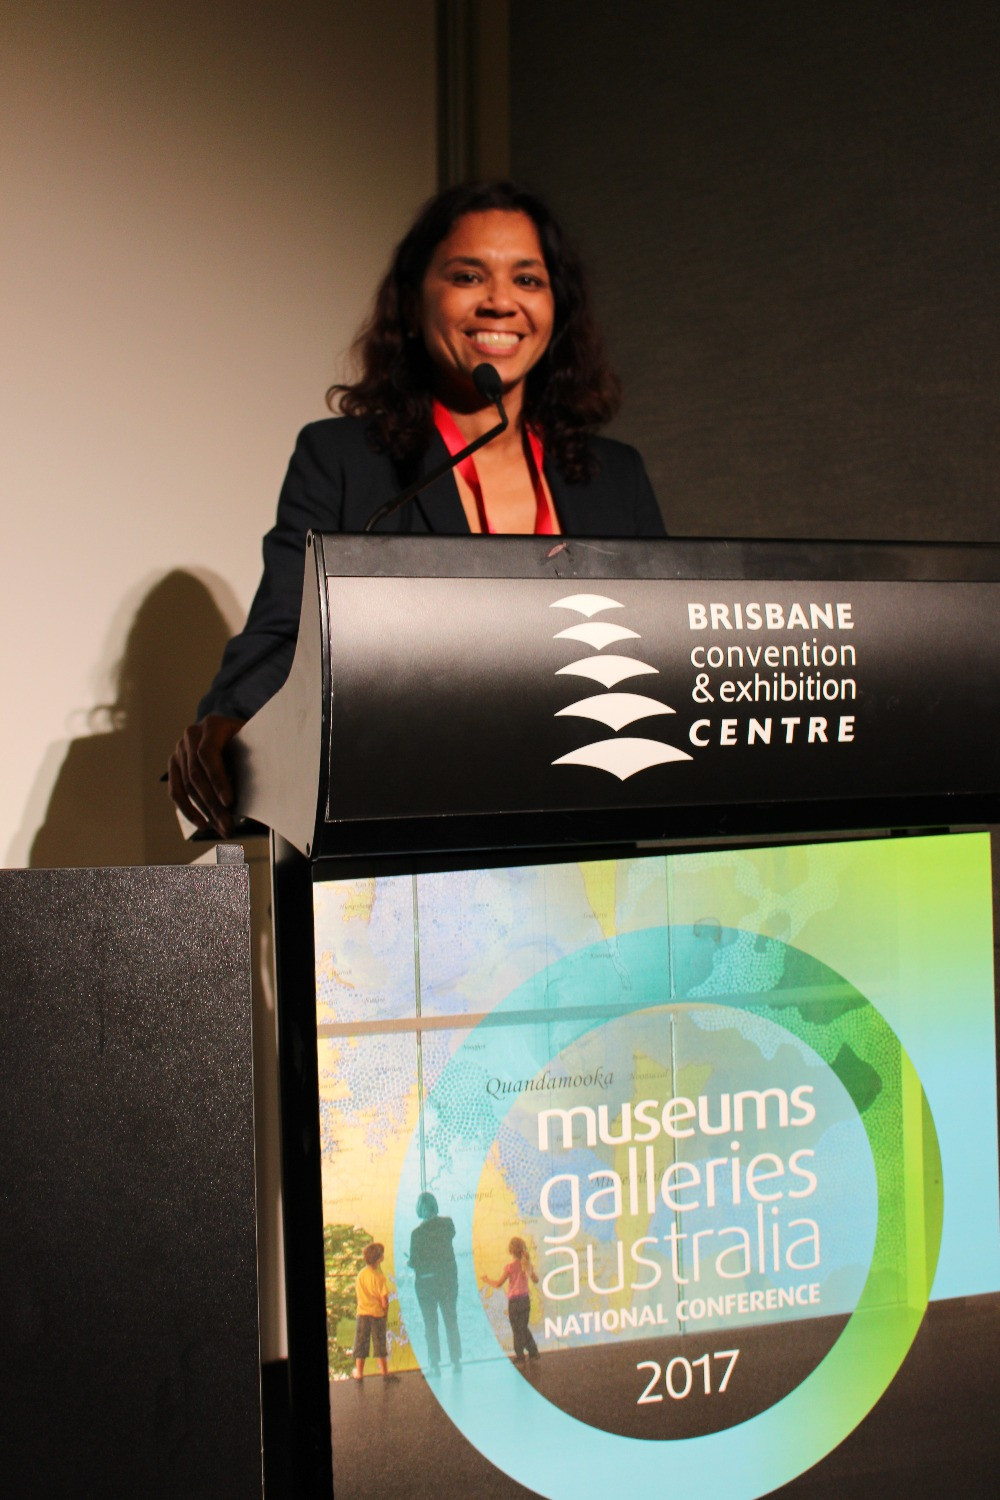 Terri Janke speaking at the Museums Galleries Australia Conference 2017